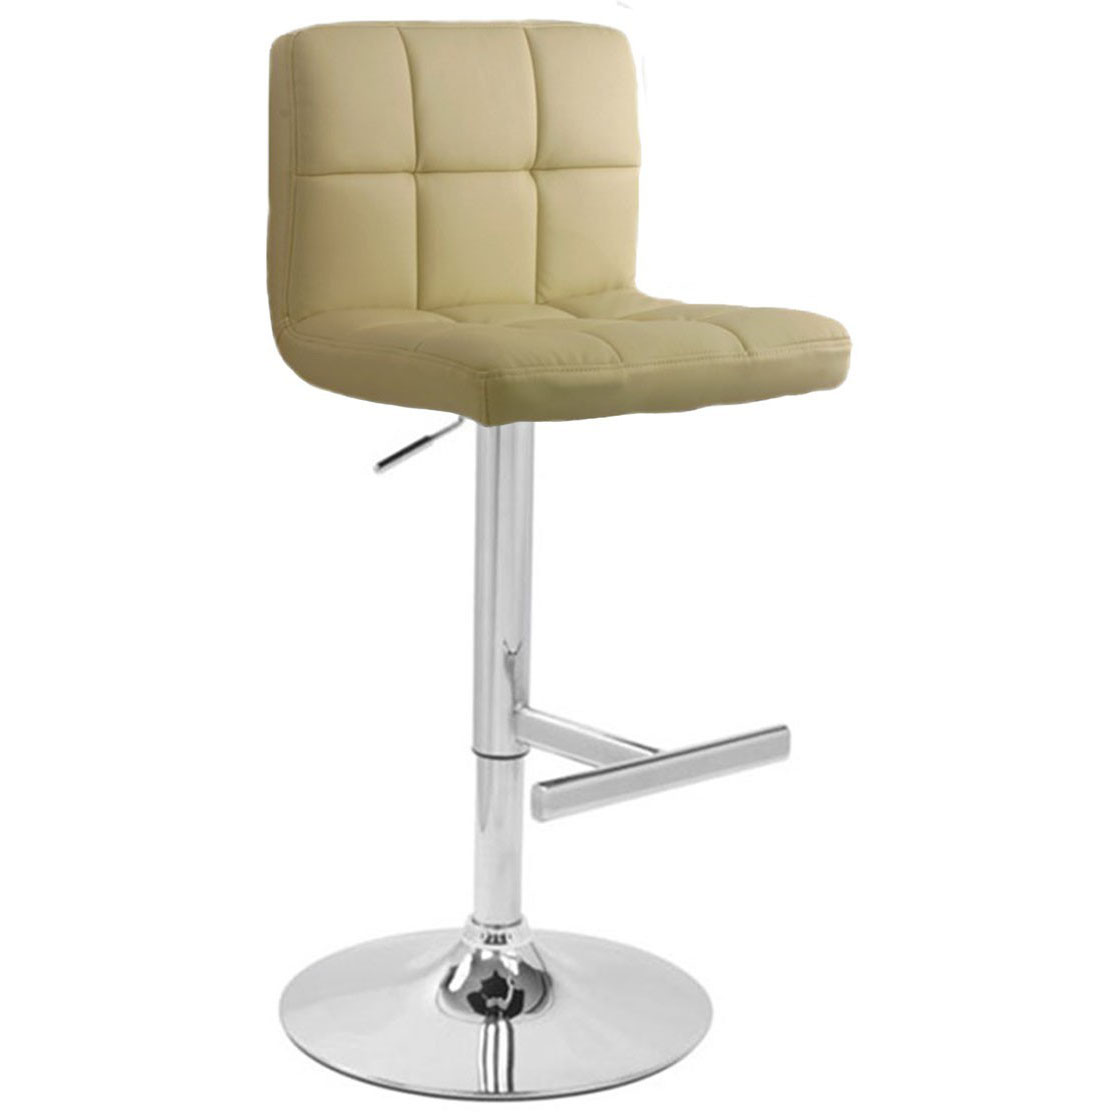 Allegro Bar Stool - Cream